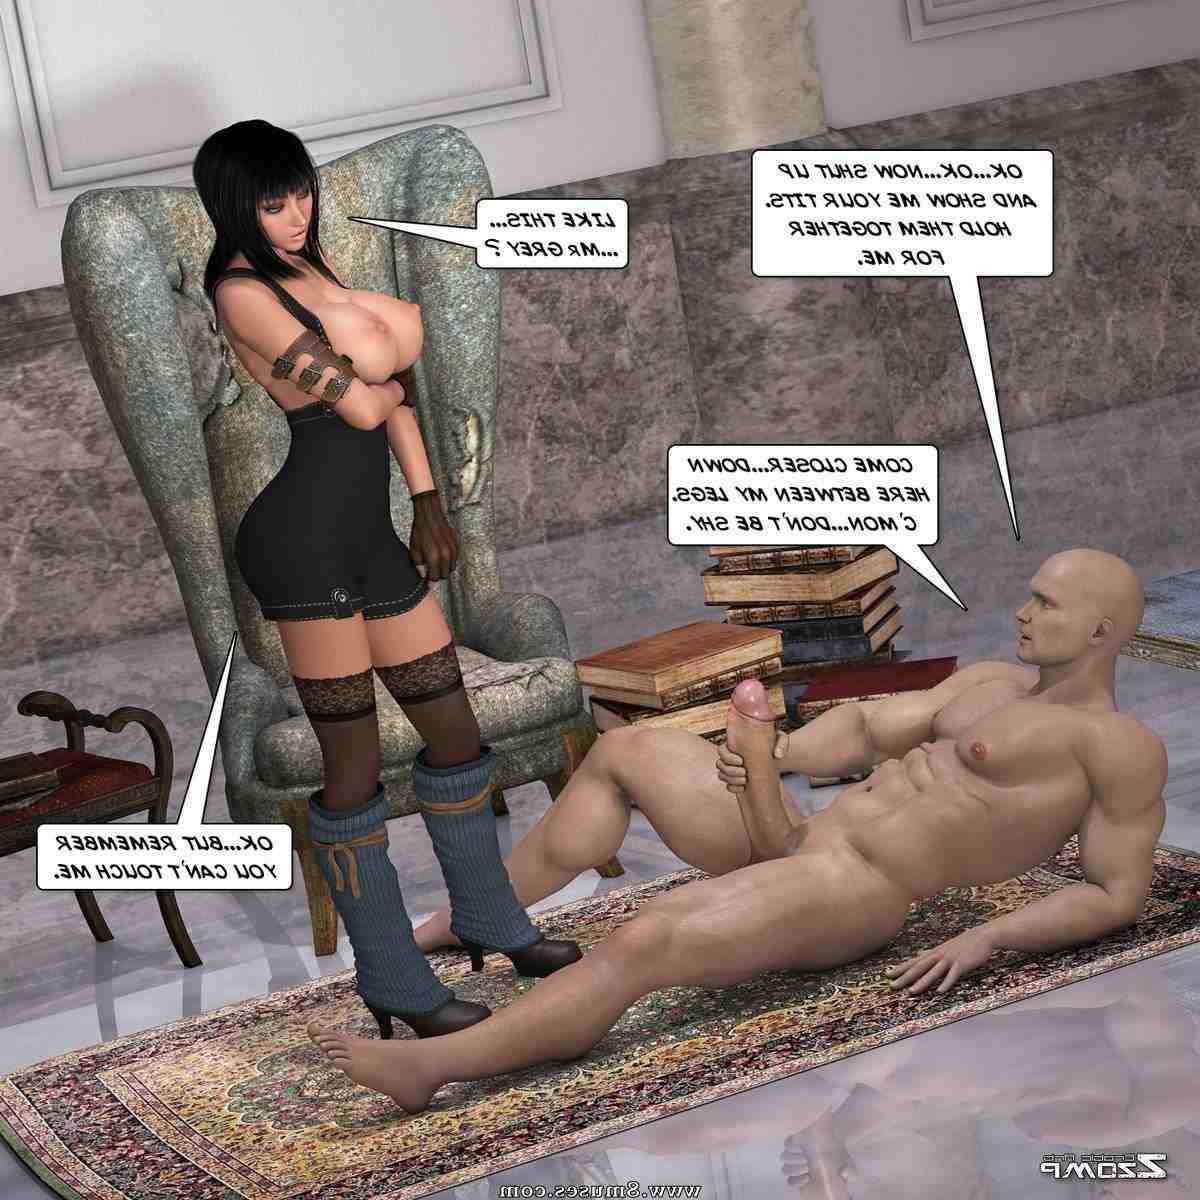 ZZomp-Comics/The-Private-Show The_Private_Show__8muses_-_Sex_and_Porn_Comics_3.jpg